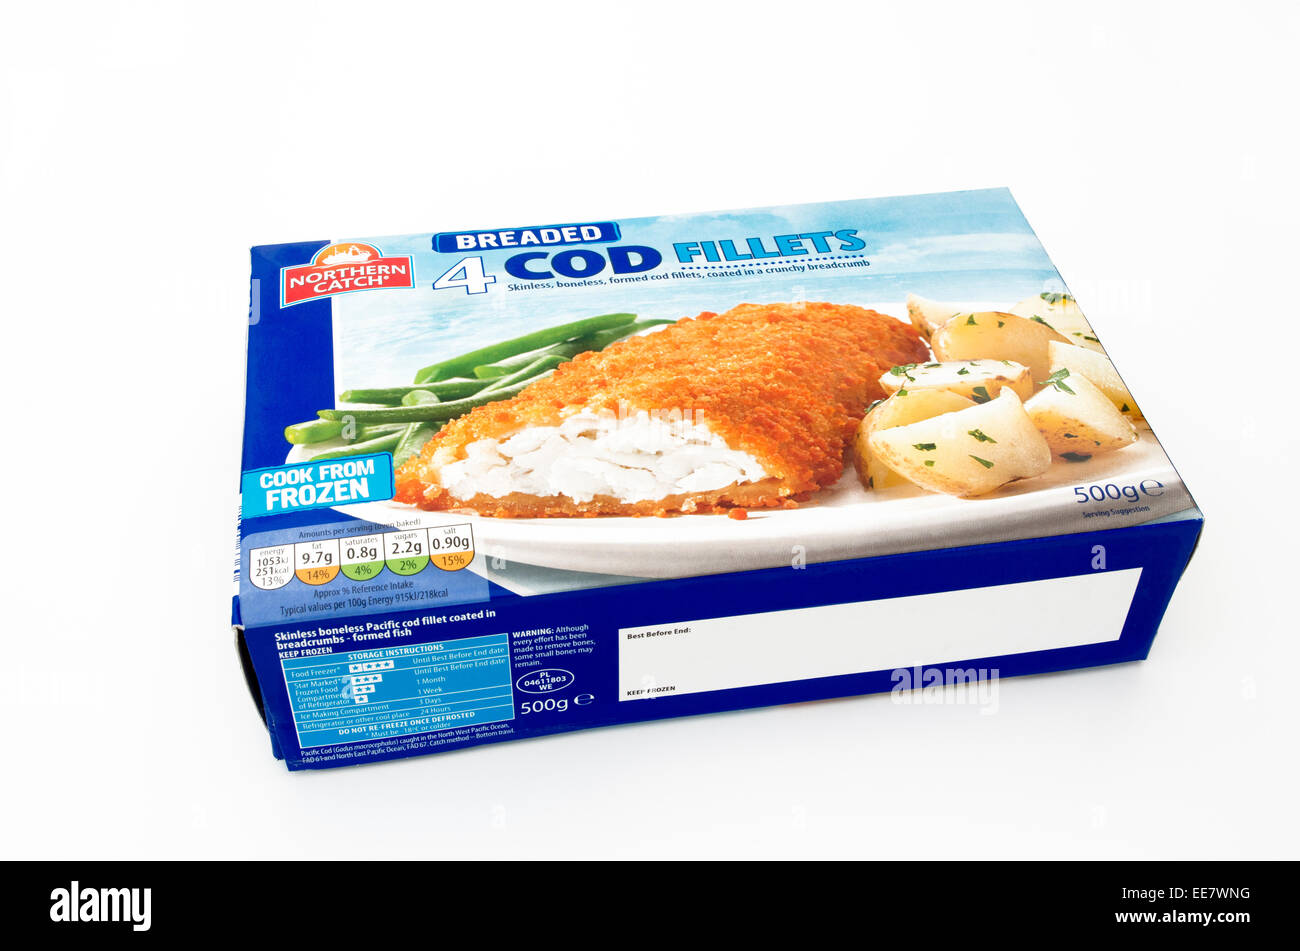 Northern Catch Brand of Breaded Cod Fillets, UK - Stock Image